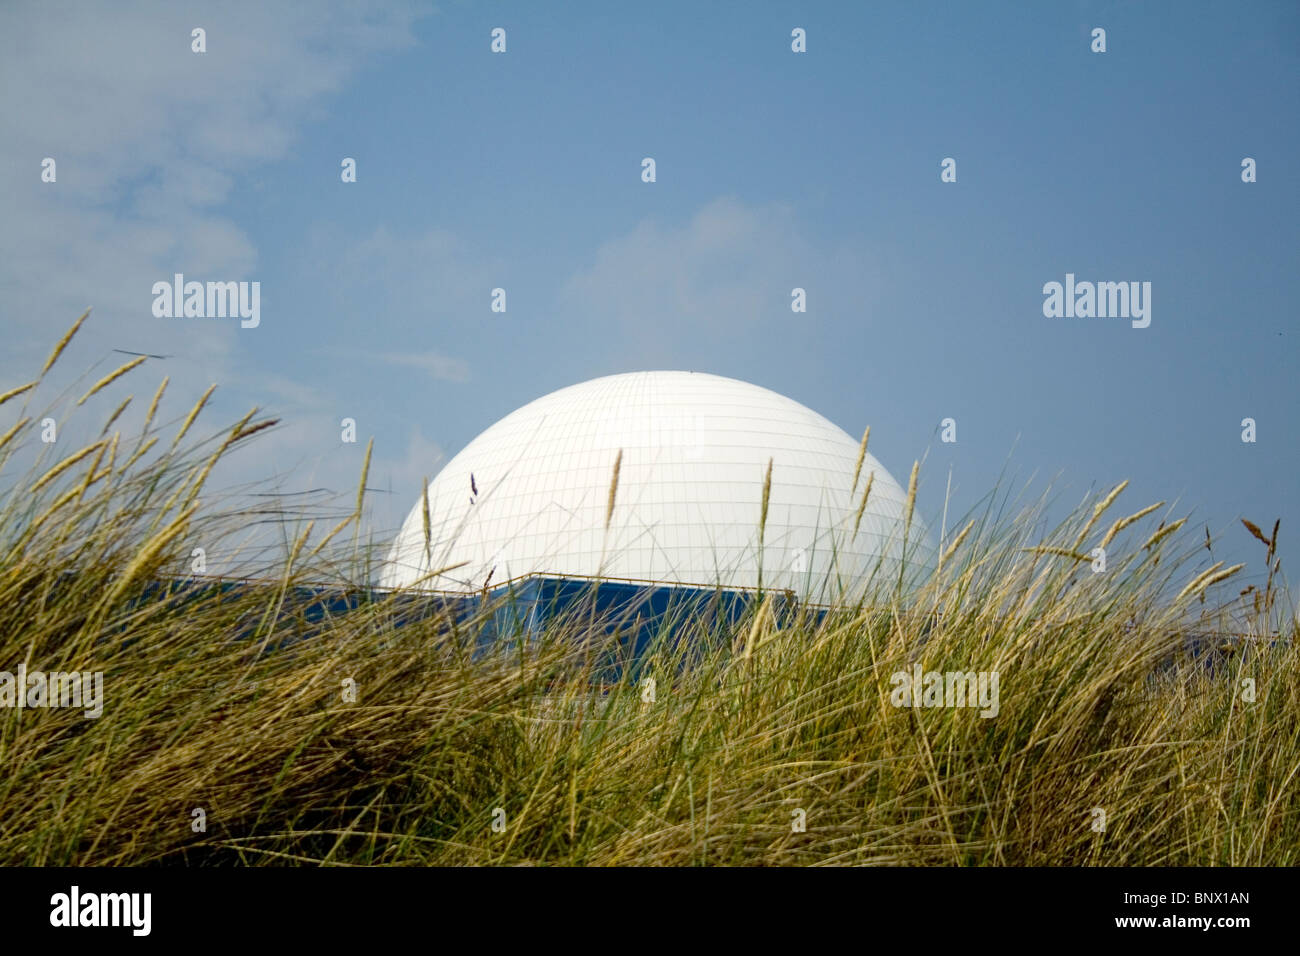 The iconic dome of Sizewell B nuclear power station appearing through the sea grass. Stock Photo